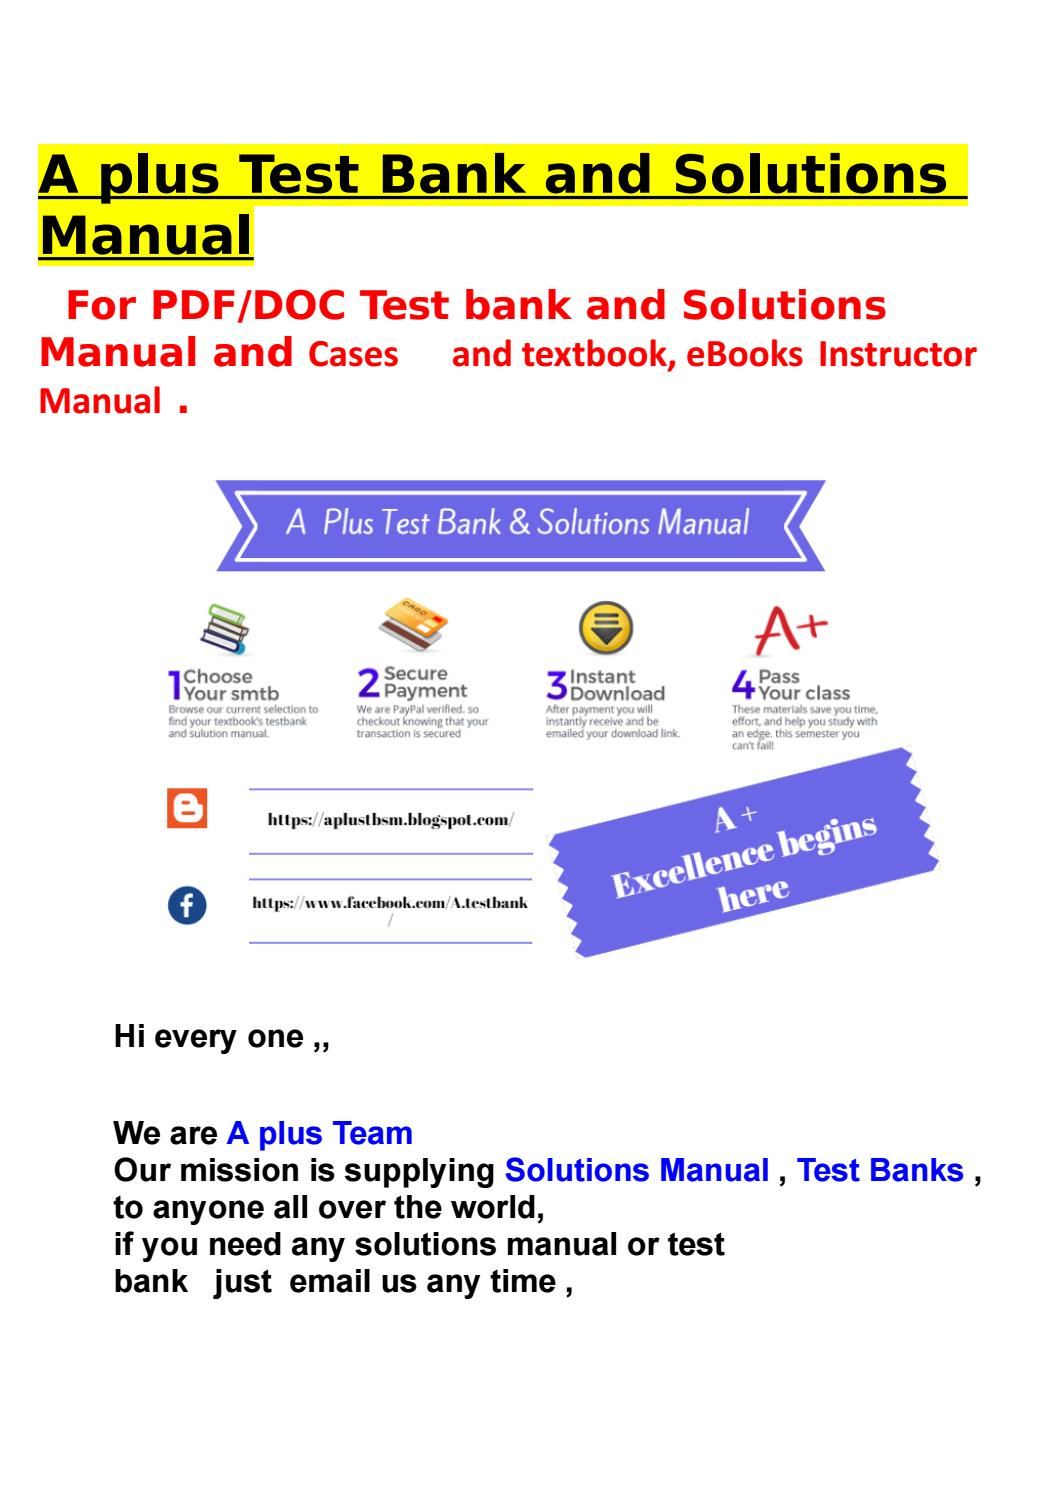 Test bank and Solution manual 2018 by A plus for Test bank and Solution  manual - issuu